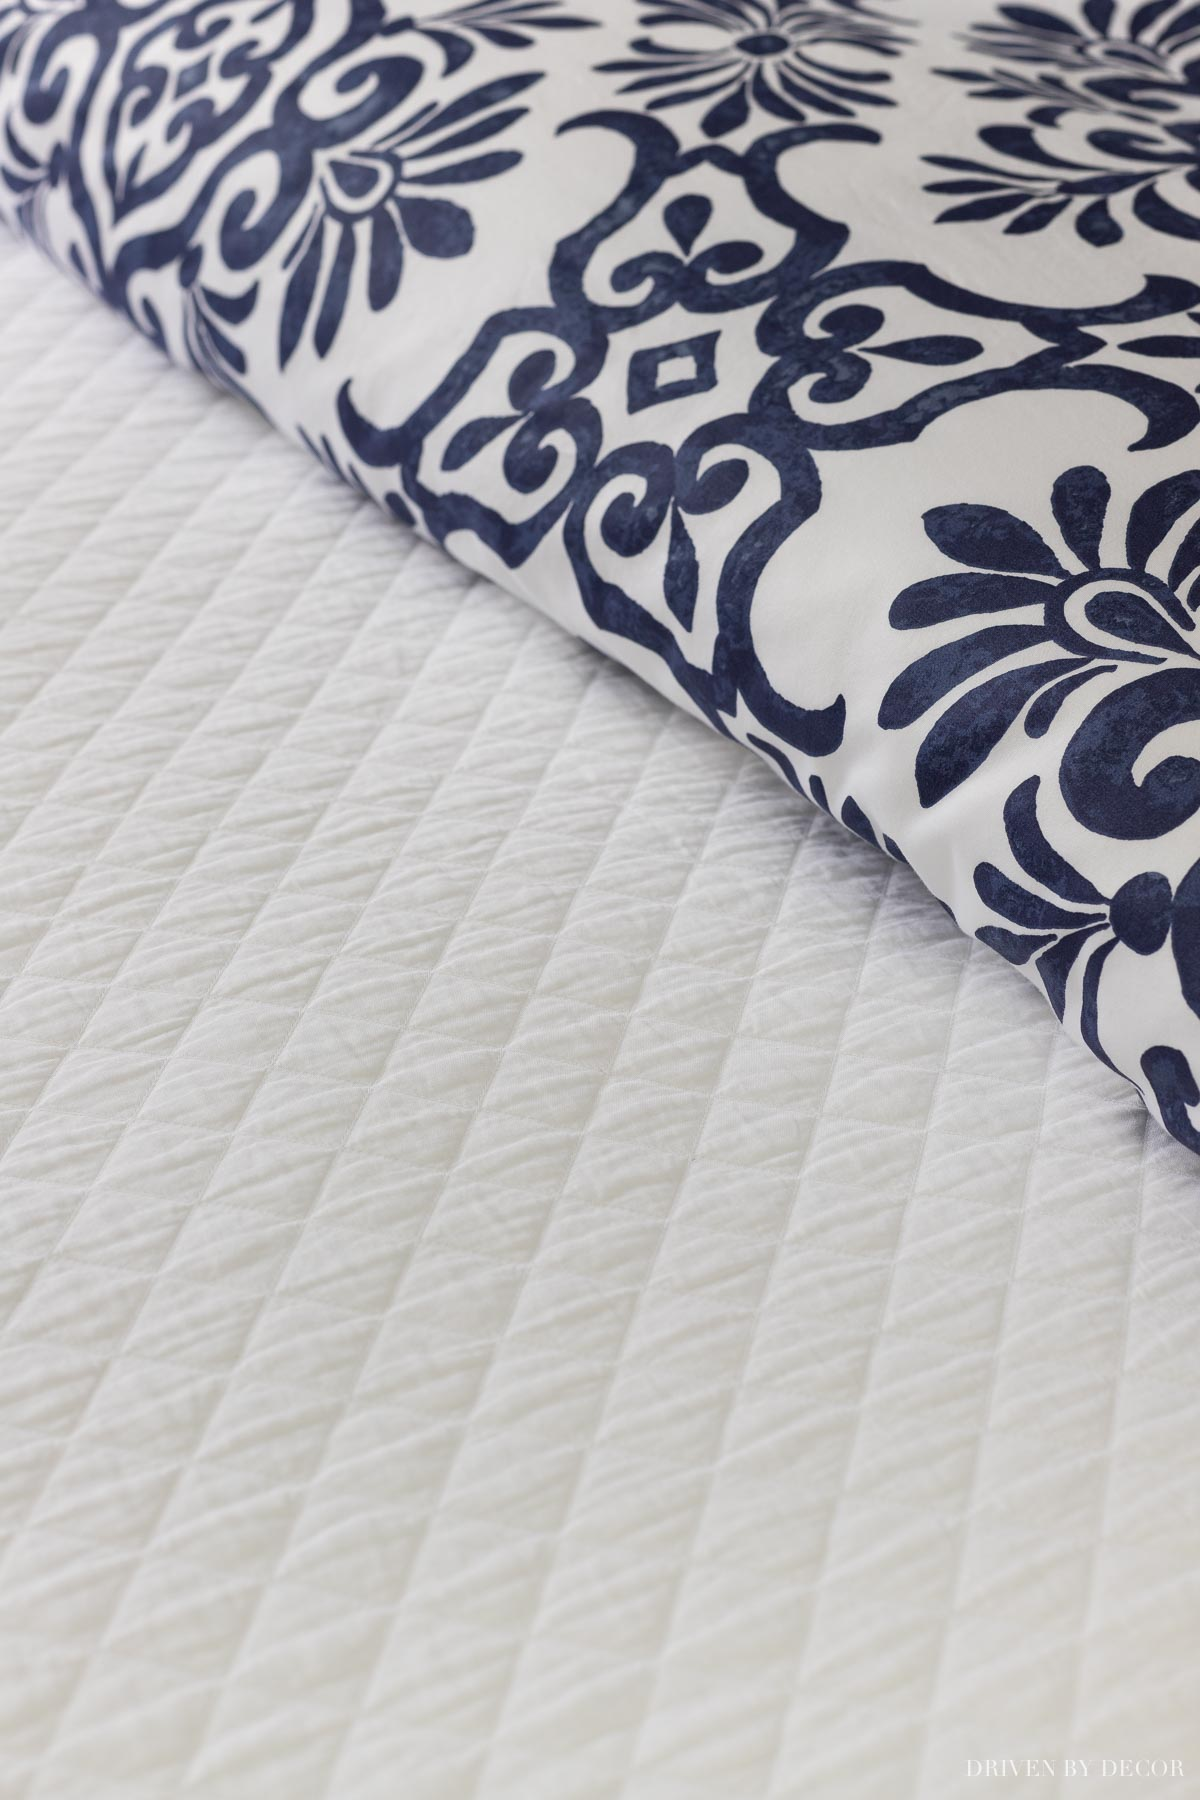 Love this white coverlet - one of my favorite bedding essentials!